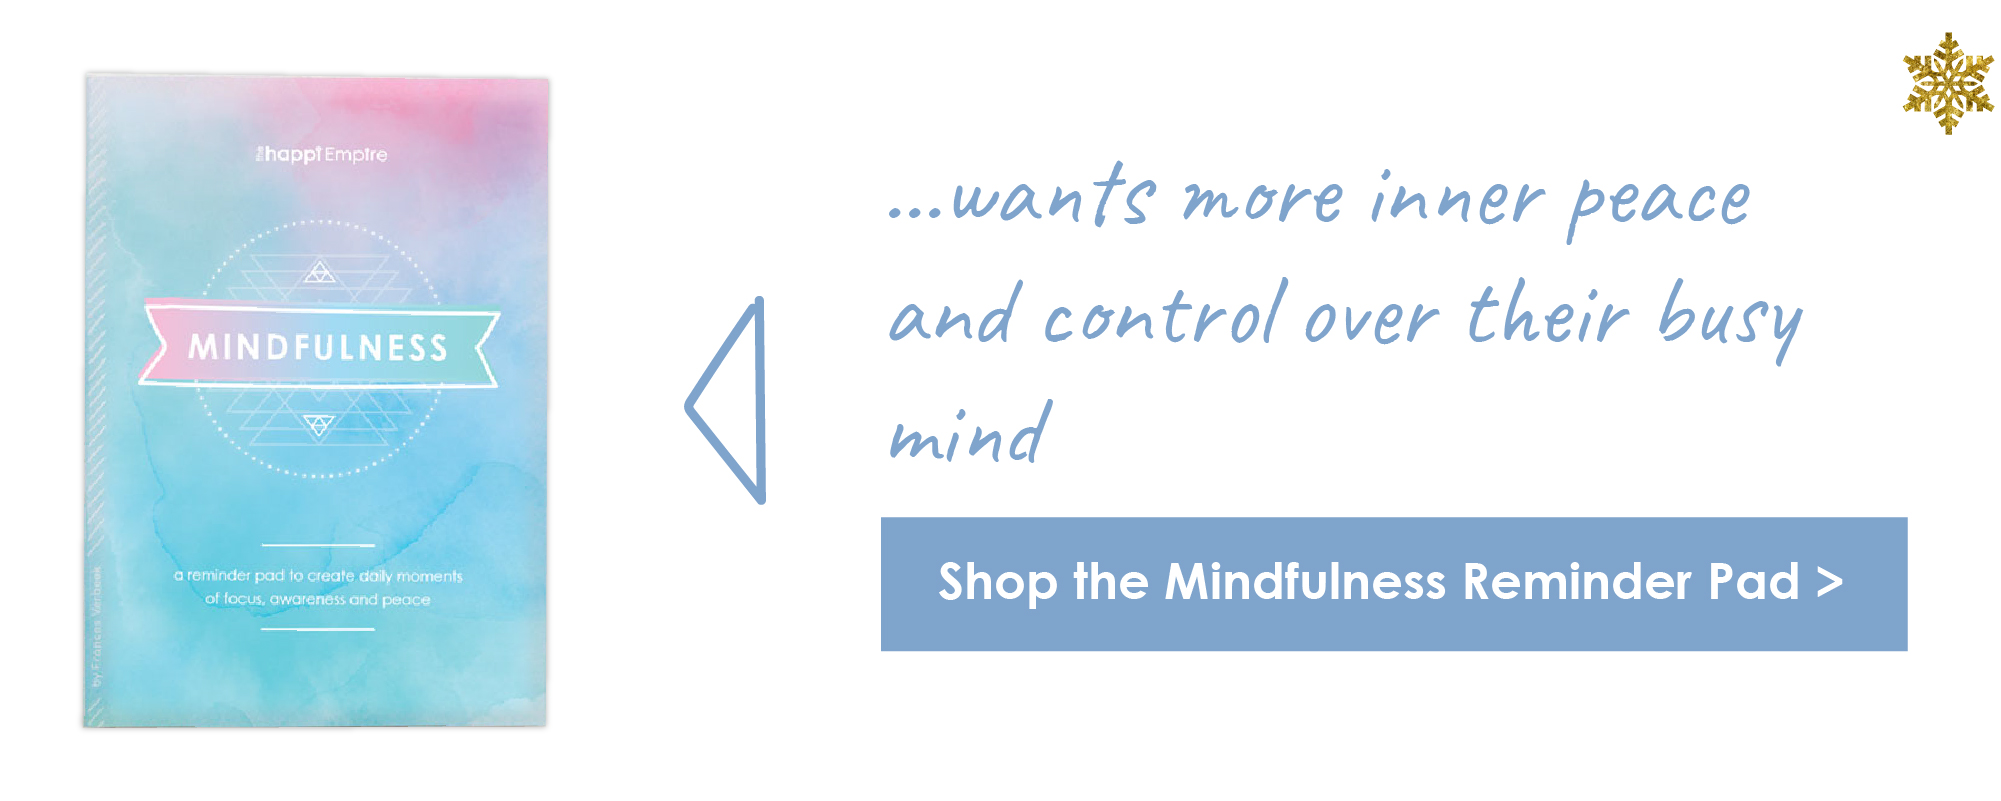 Shop the Mindfulness Pad